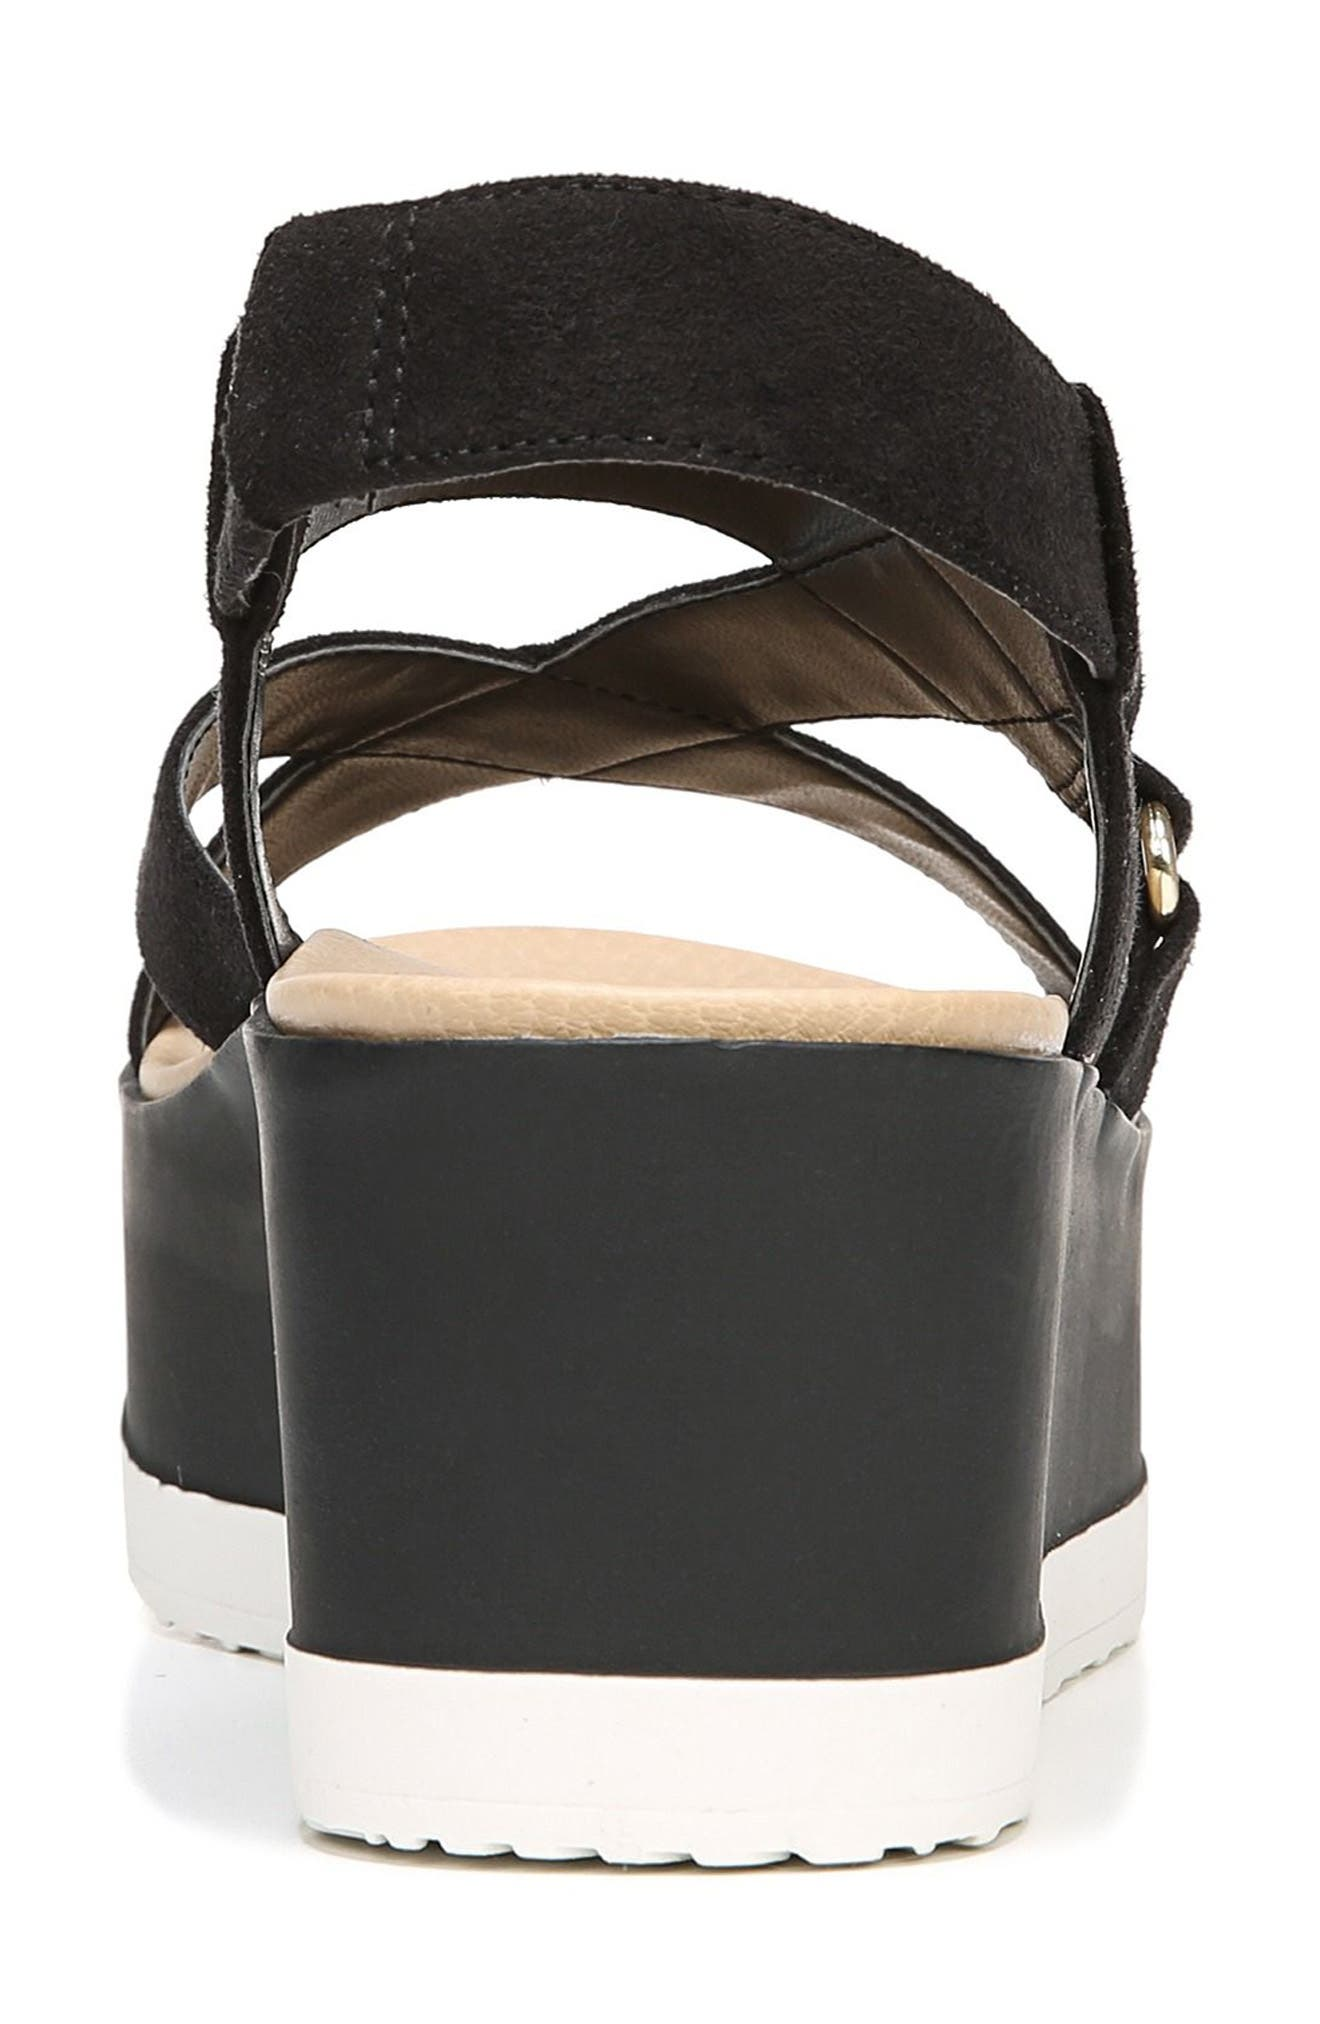 Companion Platform Sandal,                             Alternate thumbnail 7, color,                             BLACK FABRIC